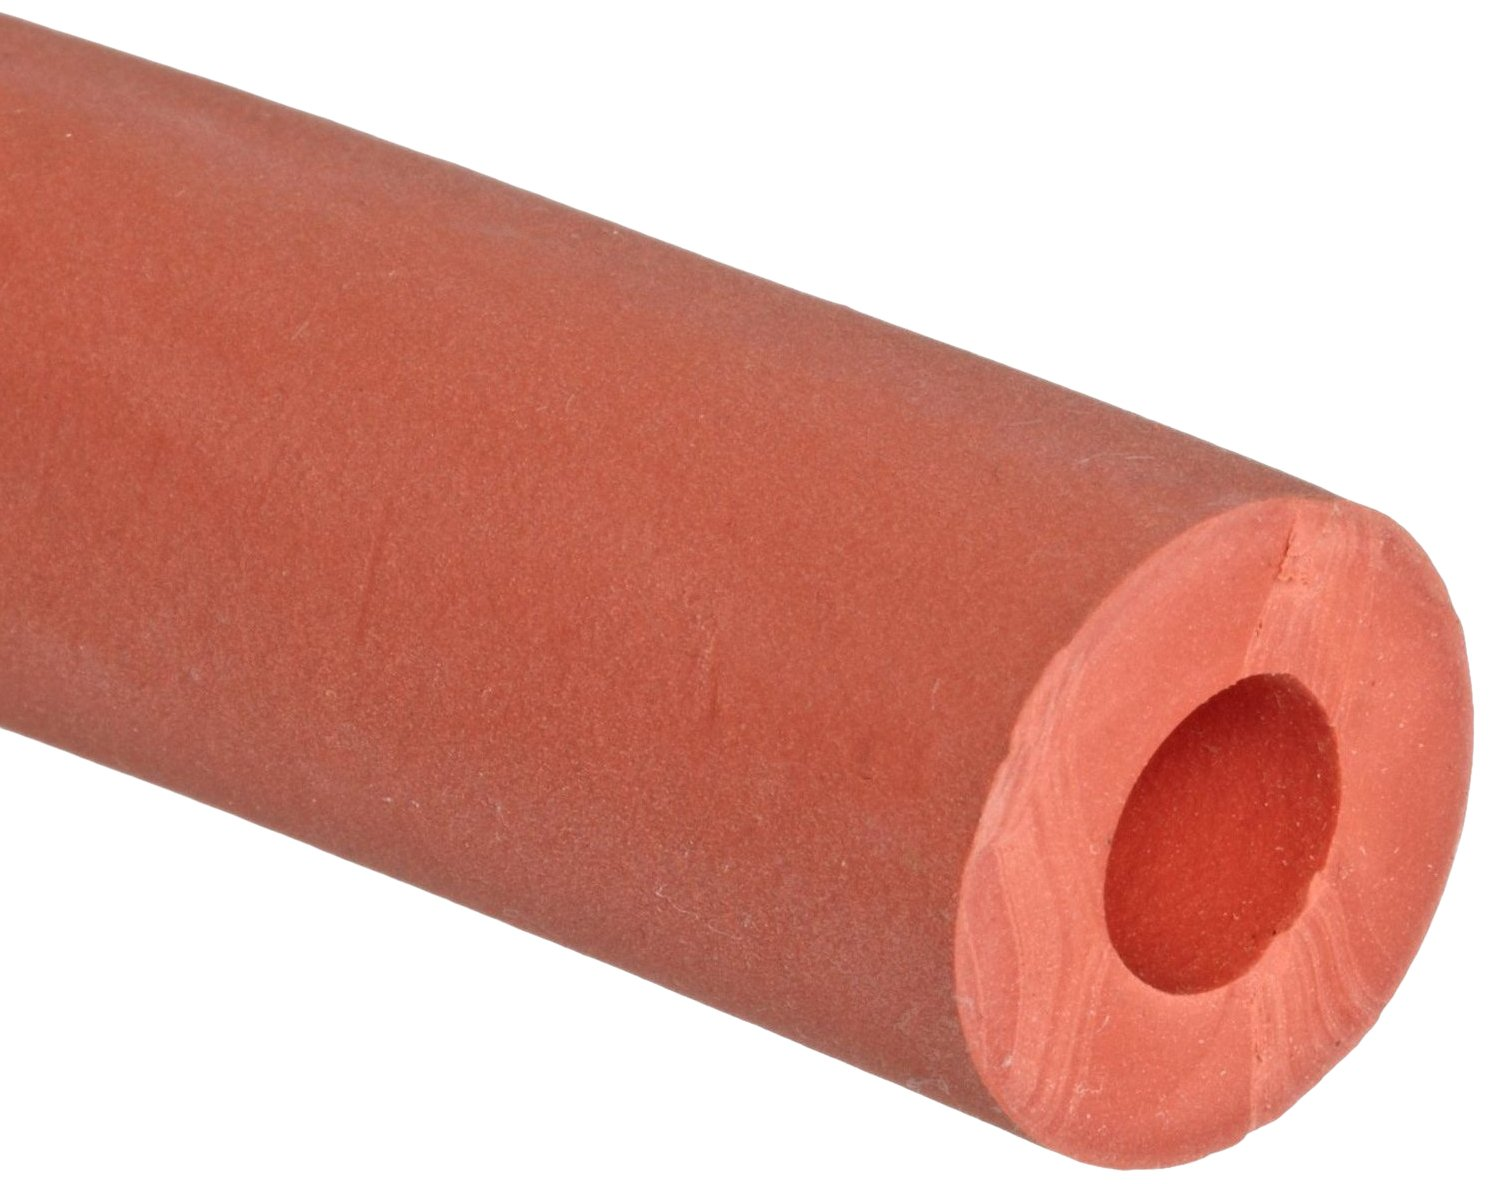 Thomas 1888 Gum Rubber Red Extruded Vacuum Tubing, 1-3/8'' OD x 5/8'' ID x 3/8'' Wall Thick, 50' Length